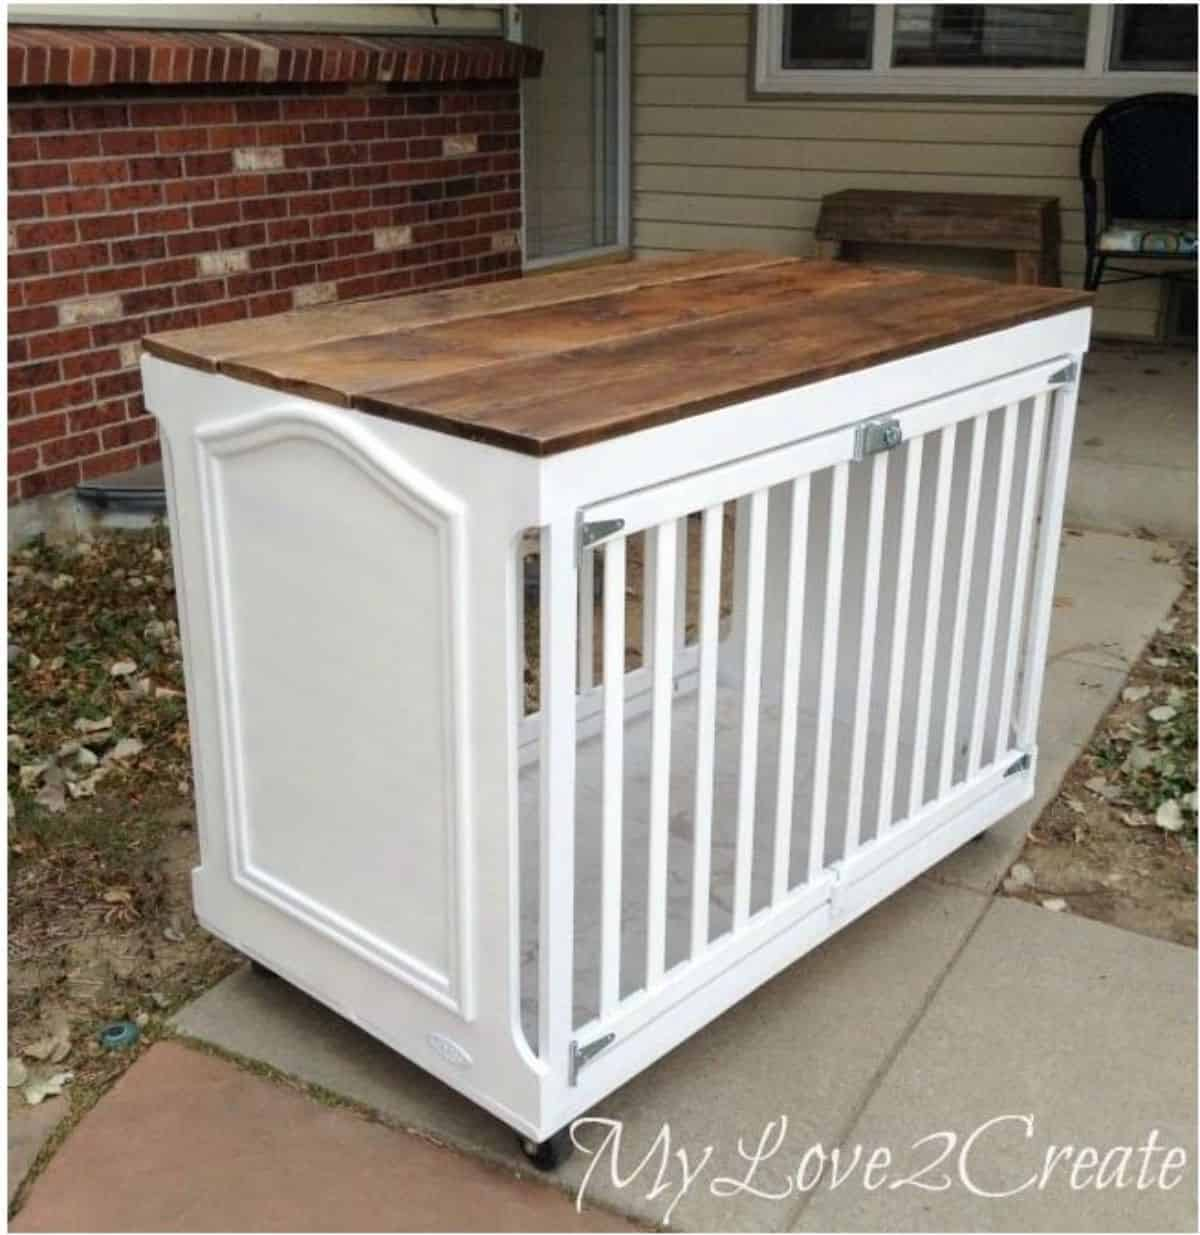 DIY dog crate from crib